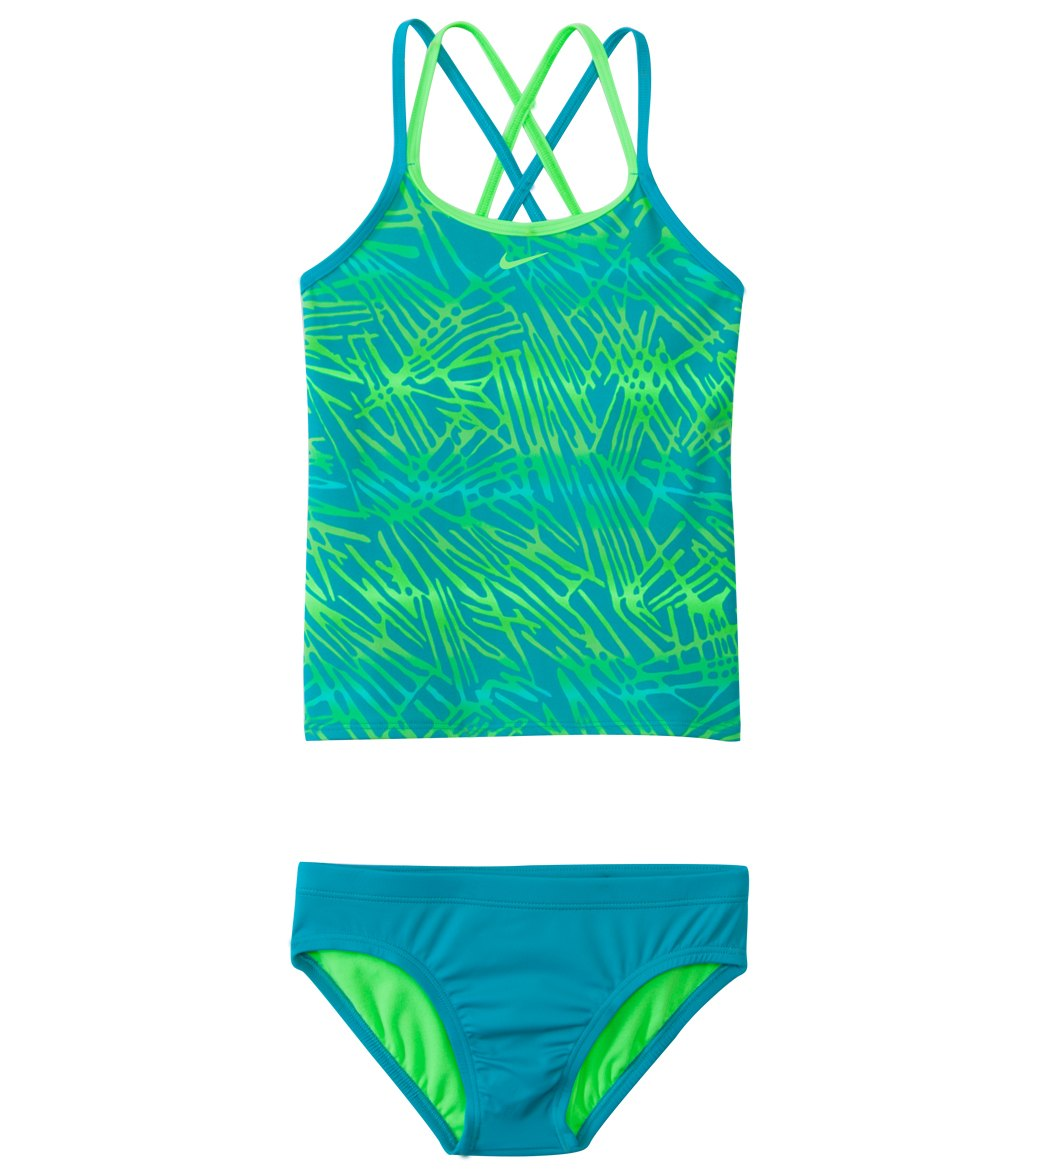 06230767e1a764 nike swim energy Sale. Up to 43% Off. Free Shipping & Returns